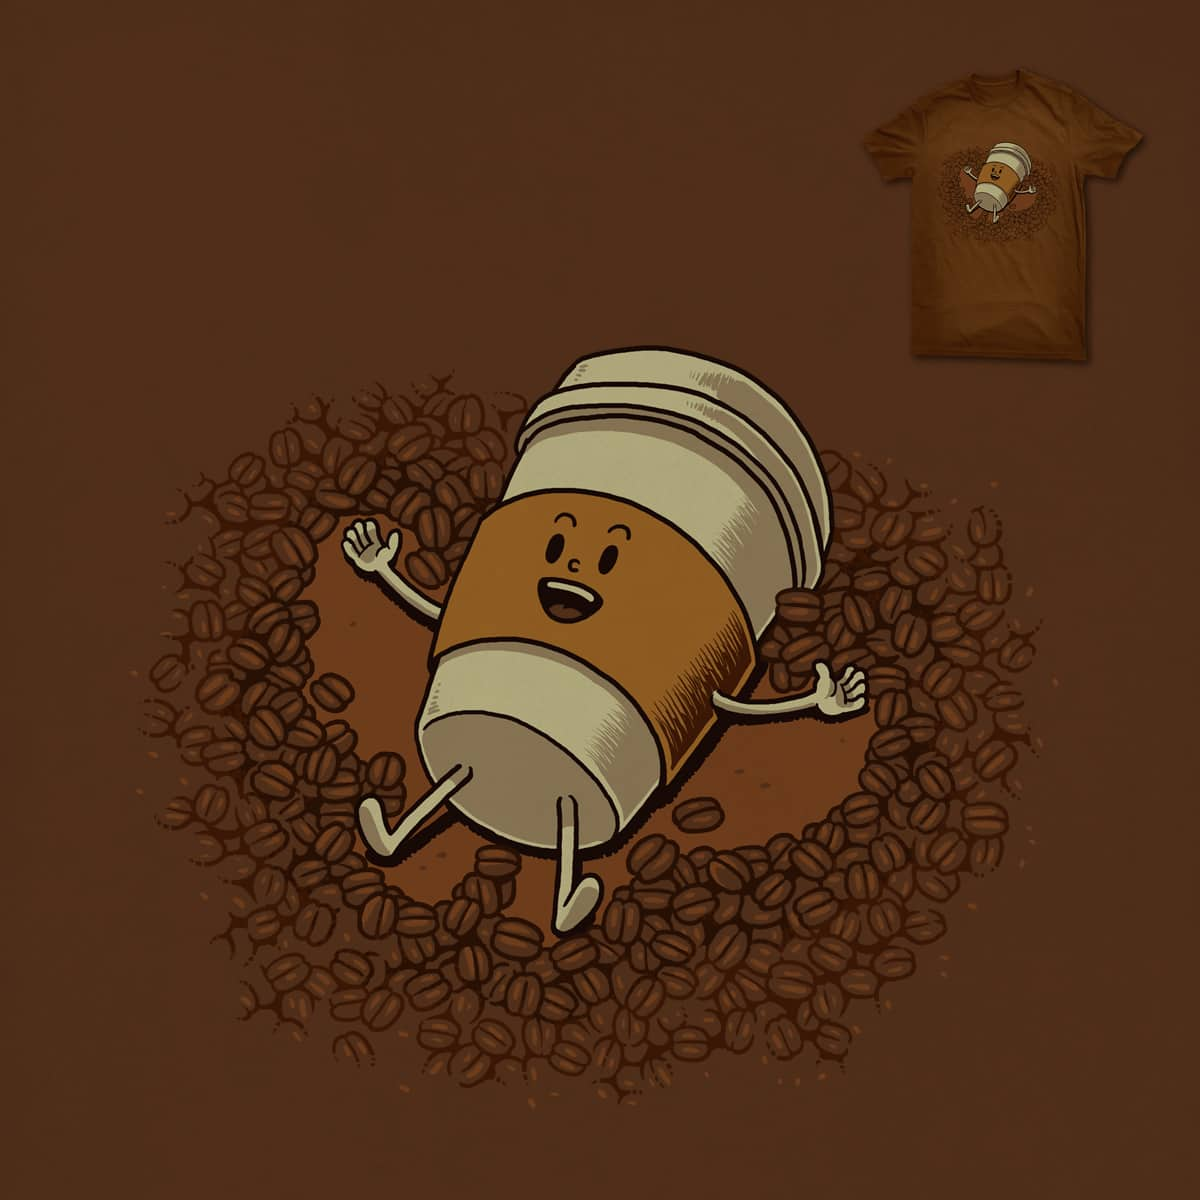 Snow Angel Of Coffee Beans by ben chen on Threadless